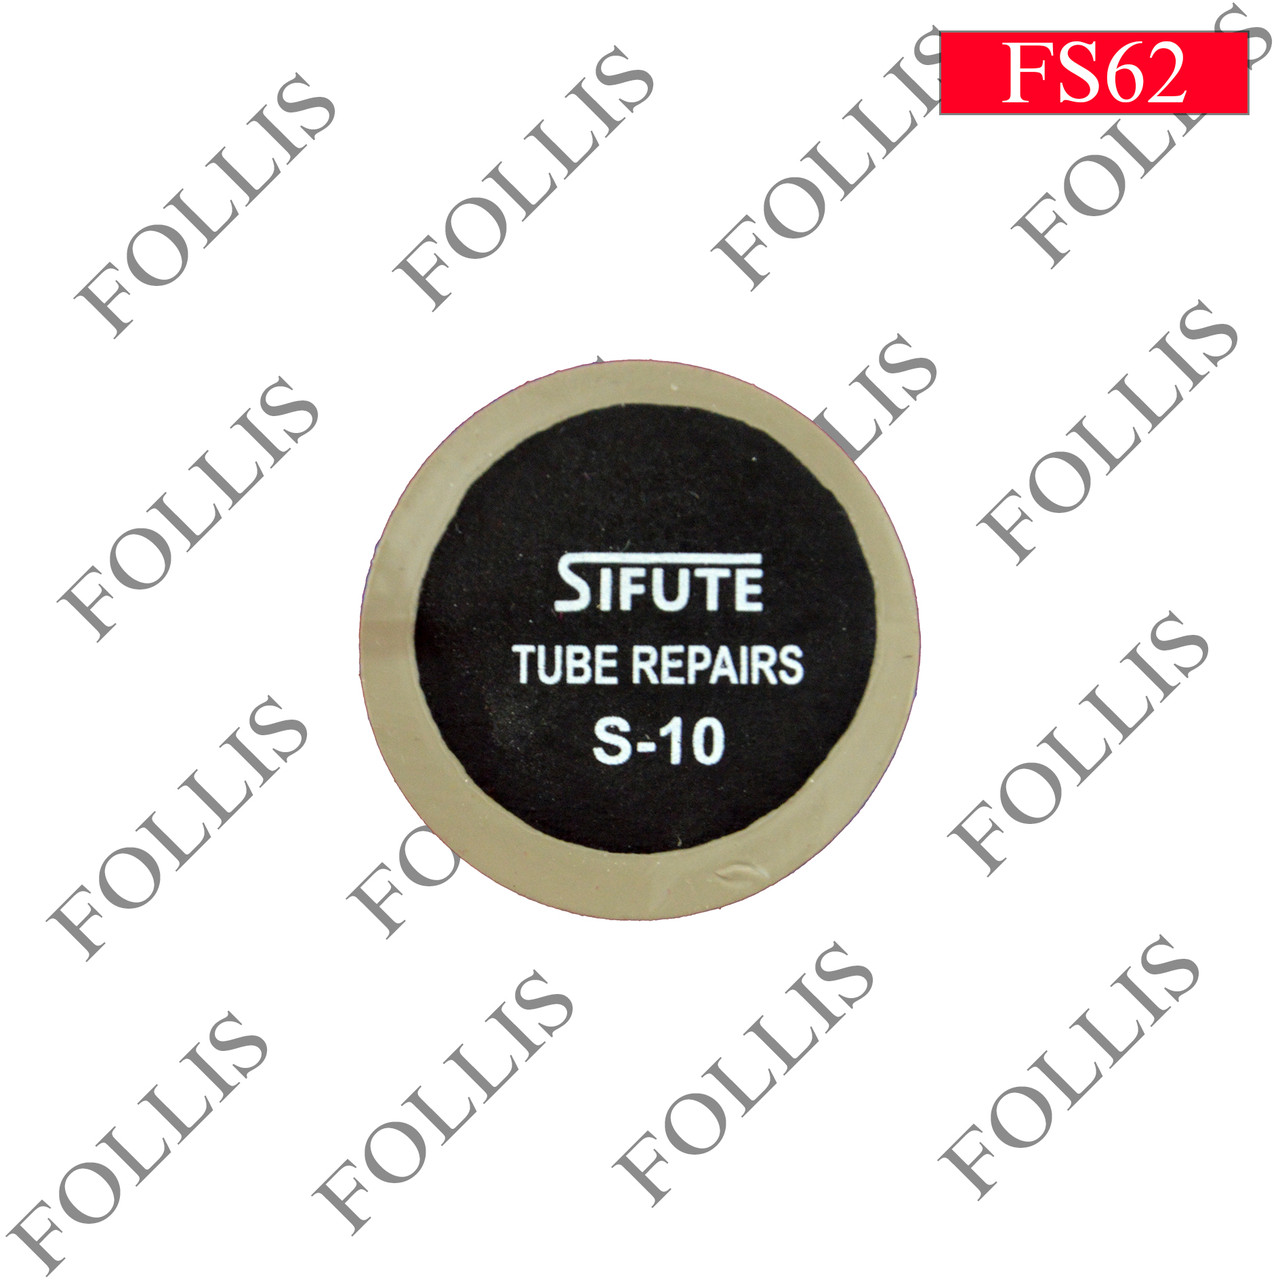 S-11 43(пачка)mm Round shape,grey and black mixed